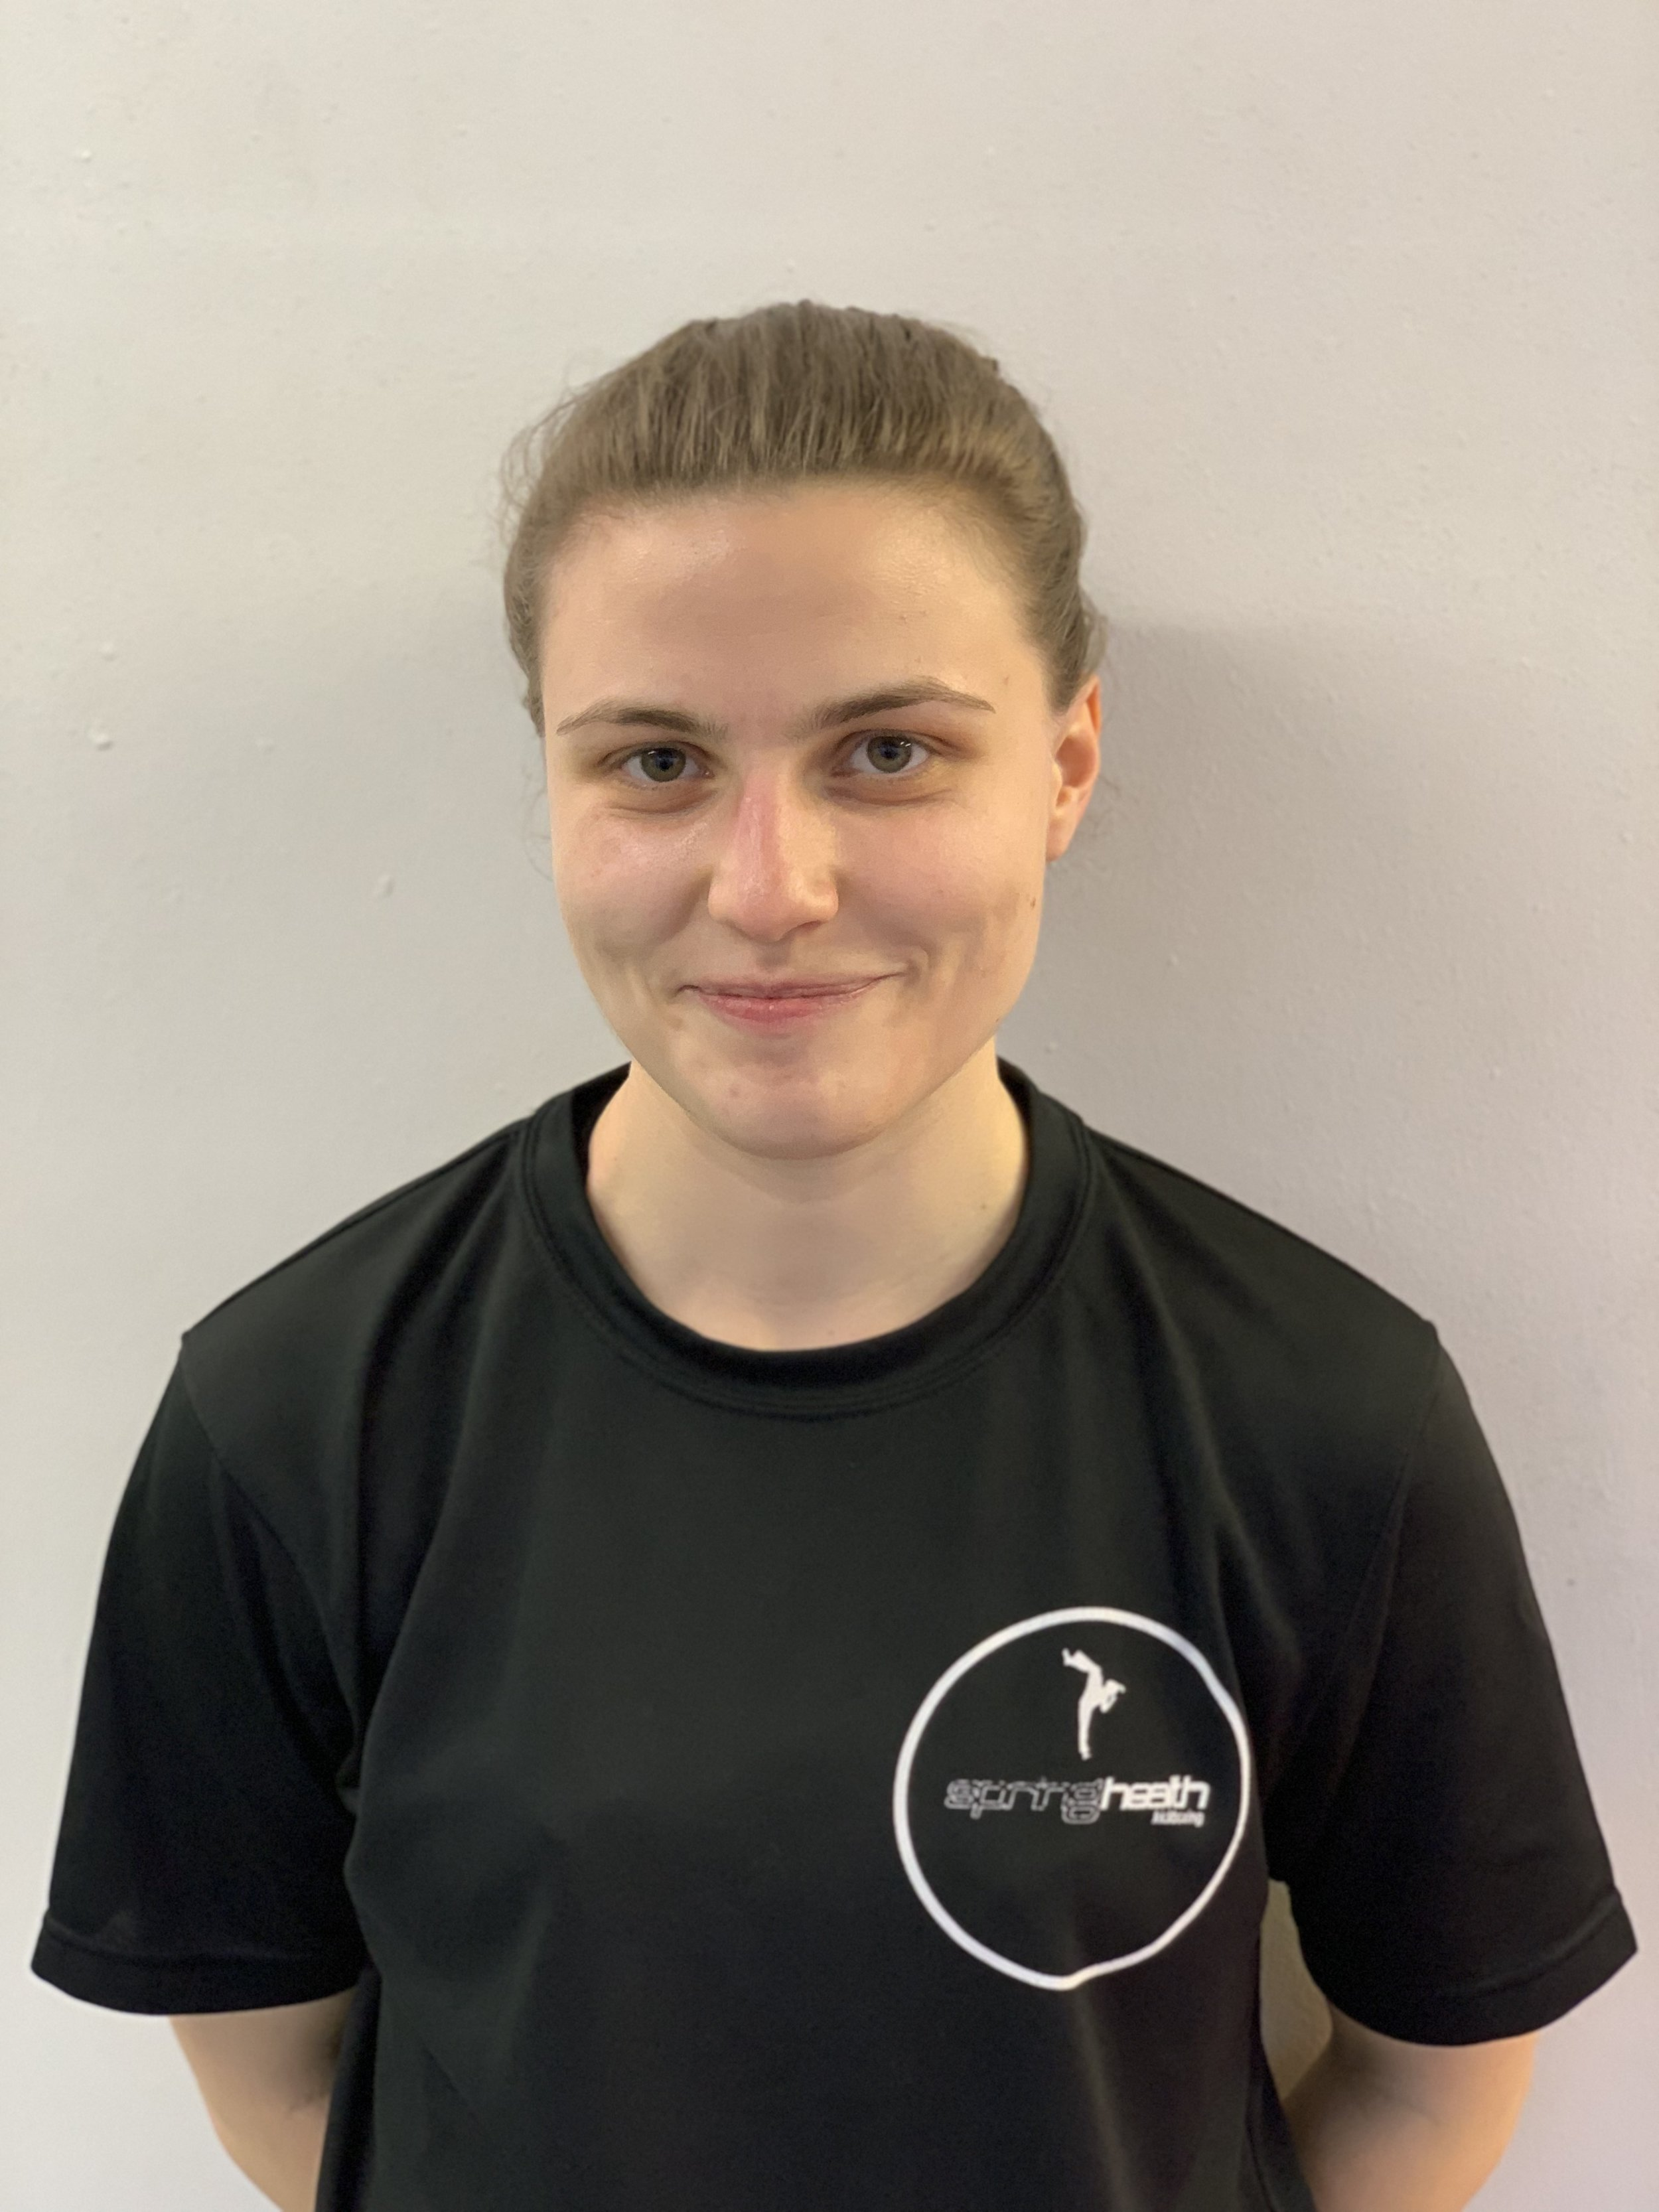 JESS FRASER - Assistant InstructorDon't let Jess's quiet exterior fool you, she knows her stuff. With crisp technique and a dedication to the details, Jess is a real asset to the team. Jess has shown an avid commitment to kickboxing, not only in her own progression but to all those she helps.